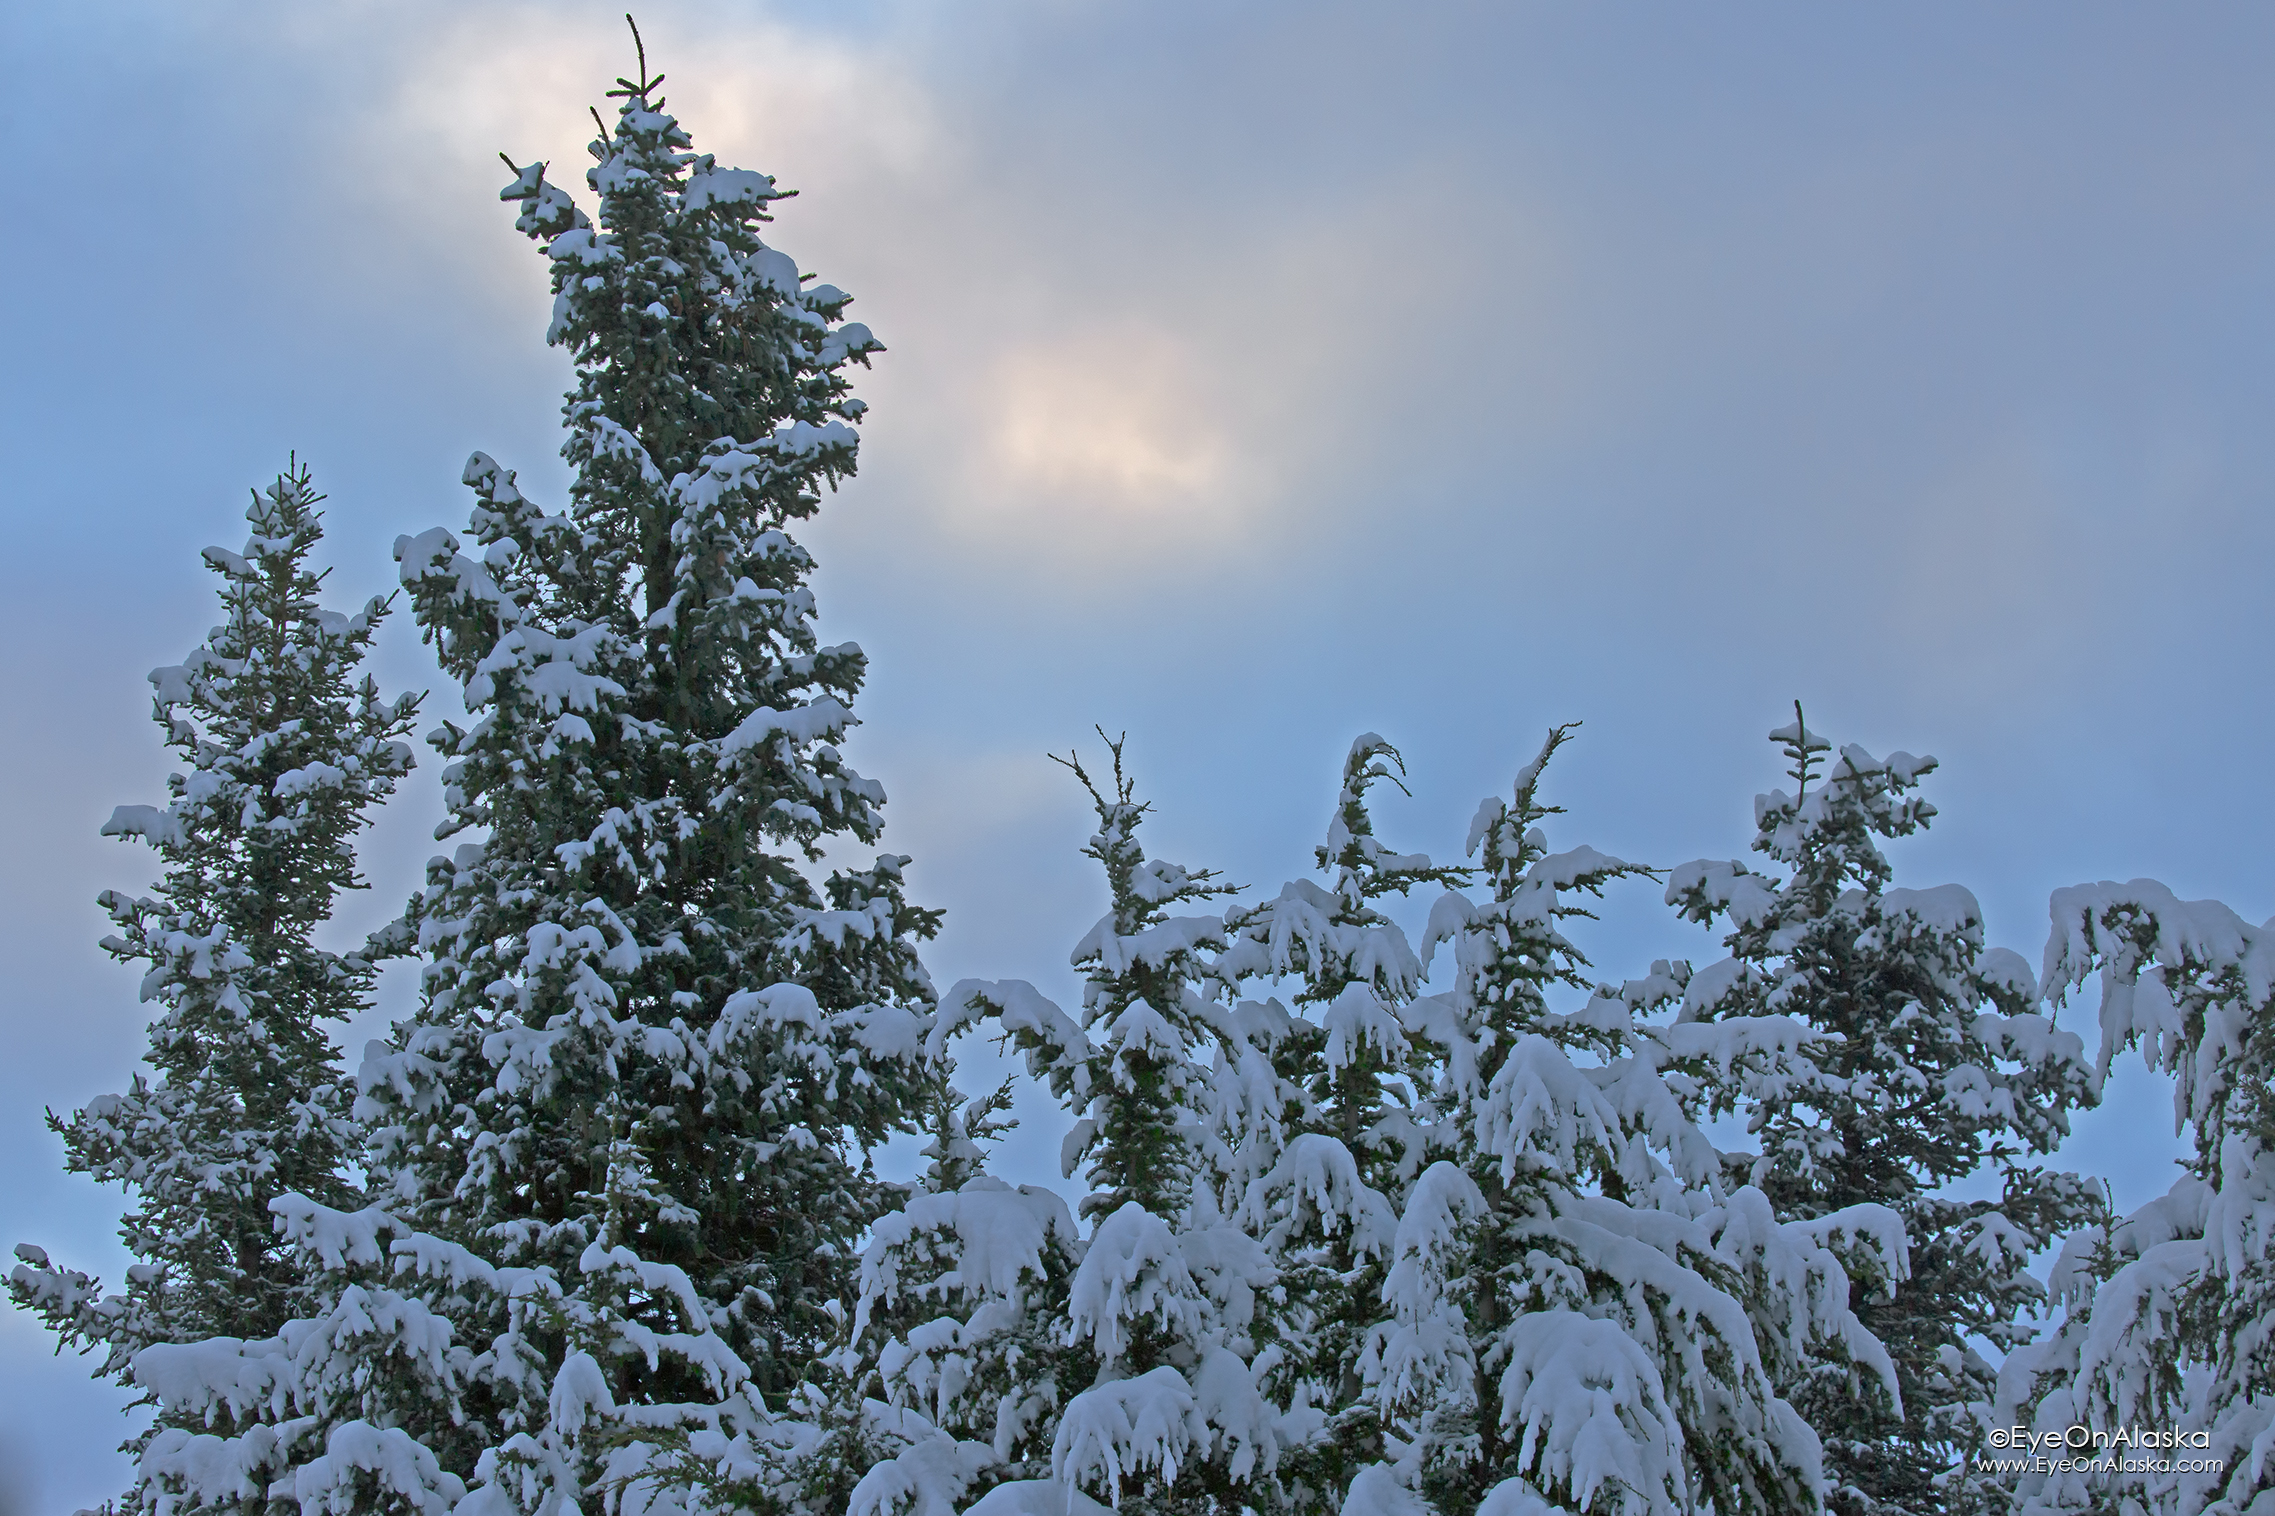 All of the trees are draped in snow, not a breath of wind since last night.